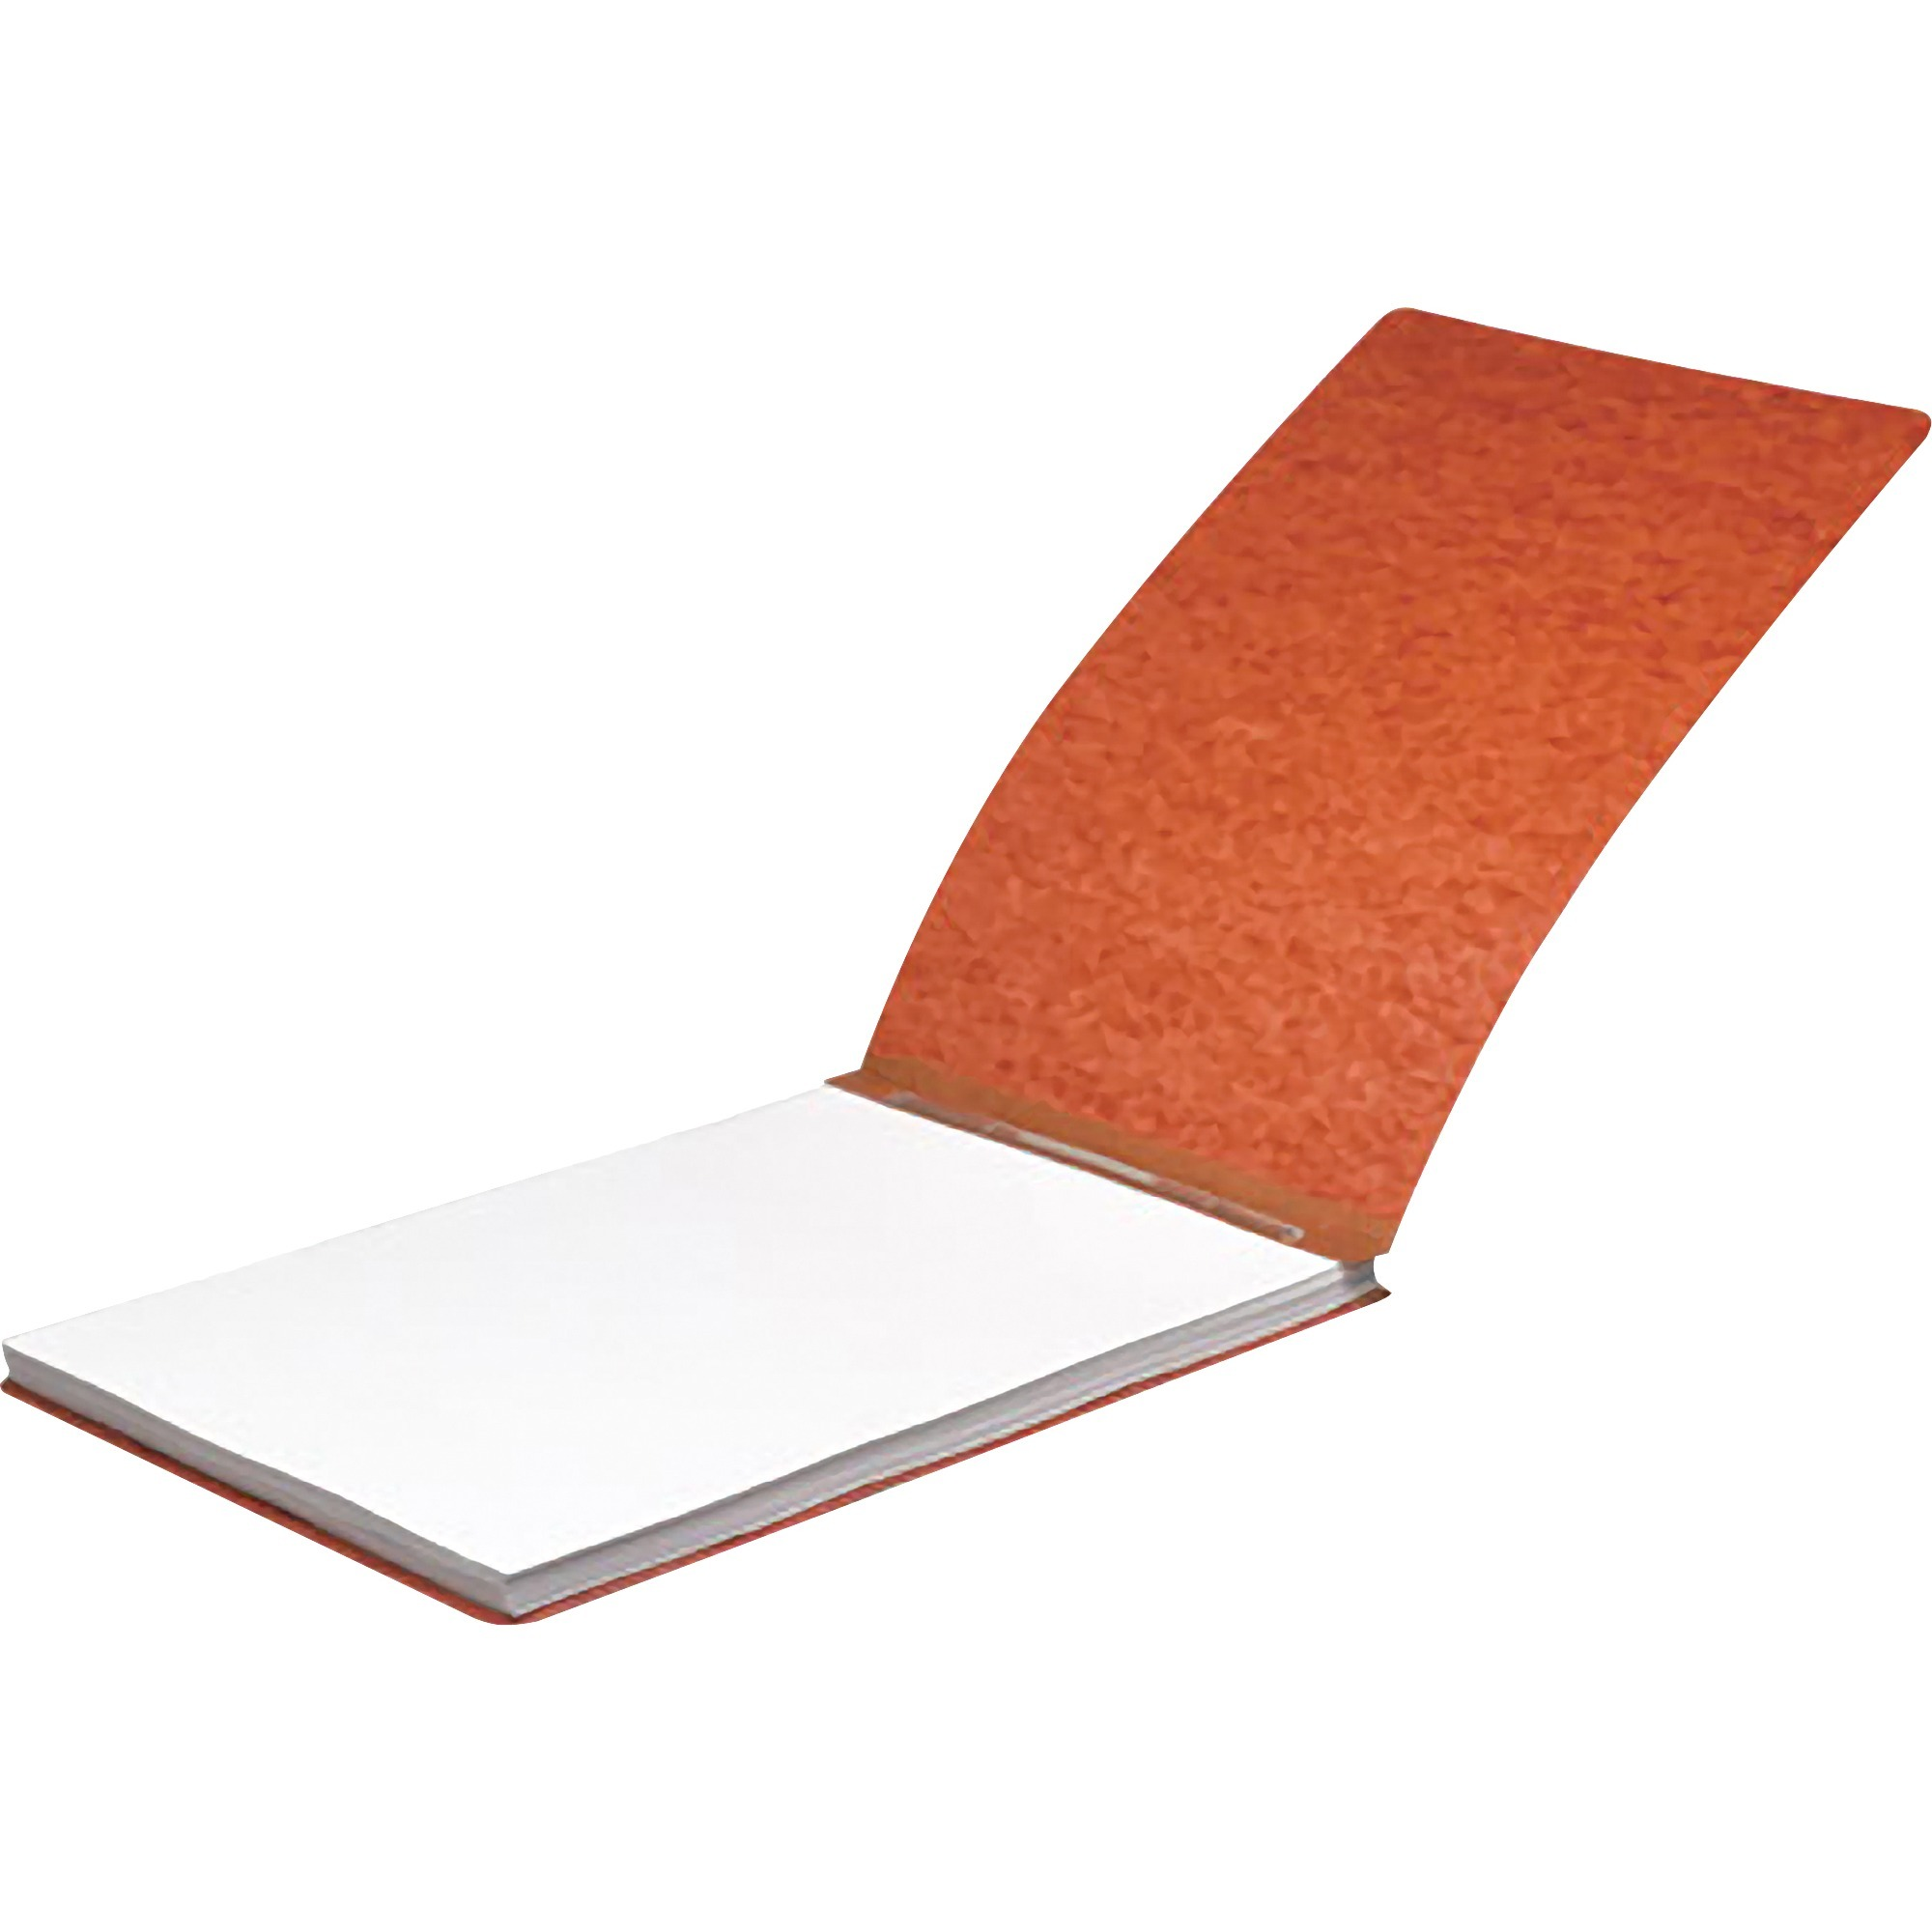 Acco, ACC18928, Pressboard Tyvek Reinforced Report Covers, 1   Each, Earth Red by ACCO Brands Corporation